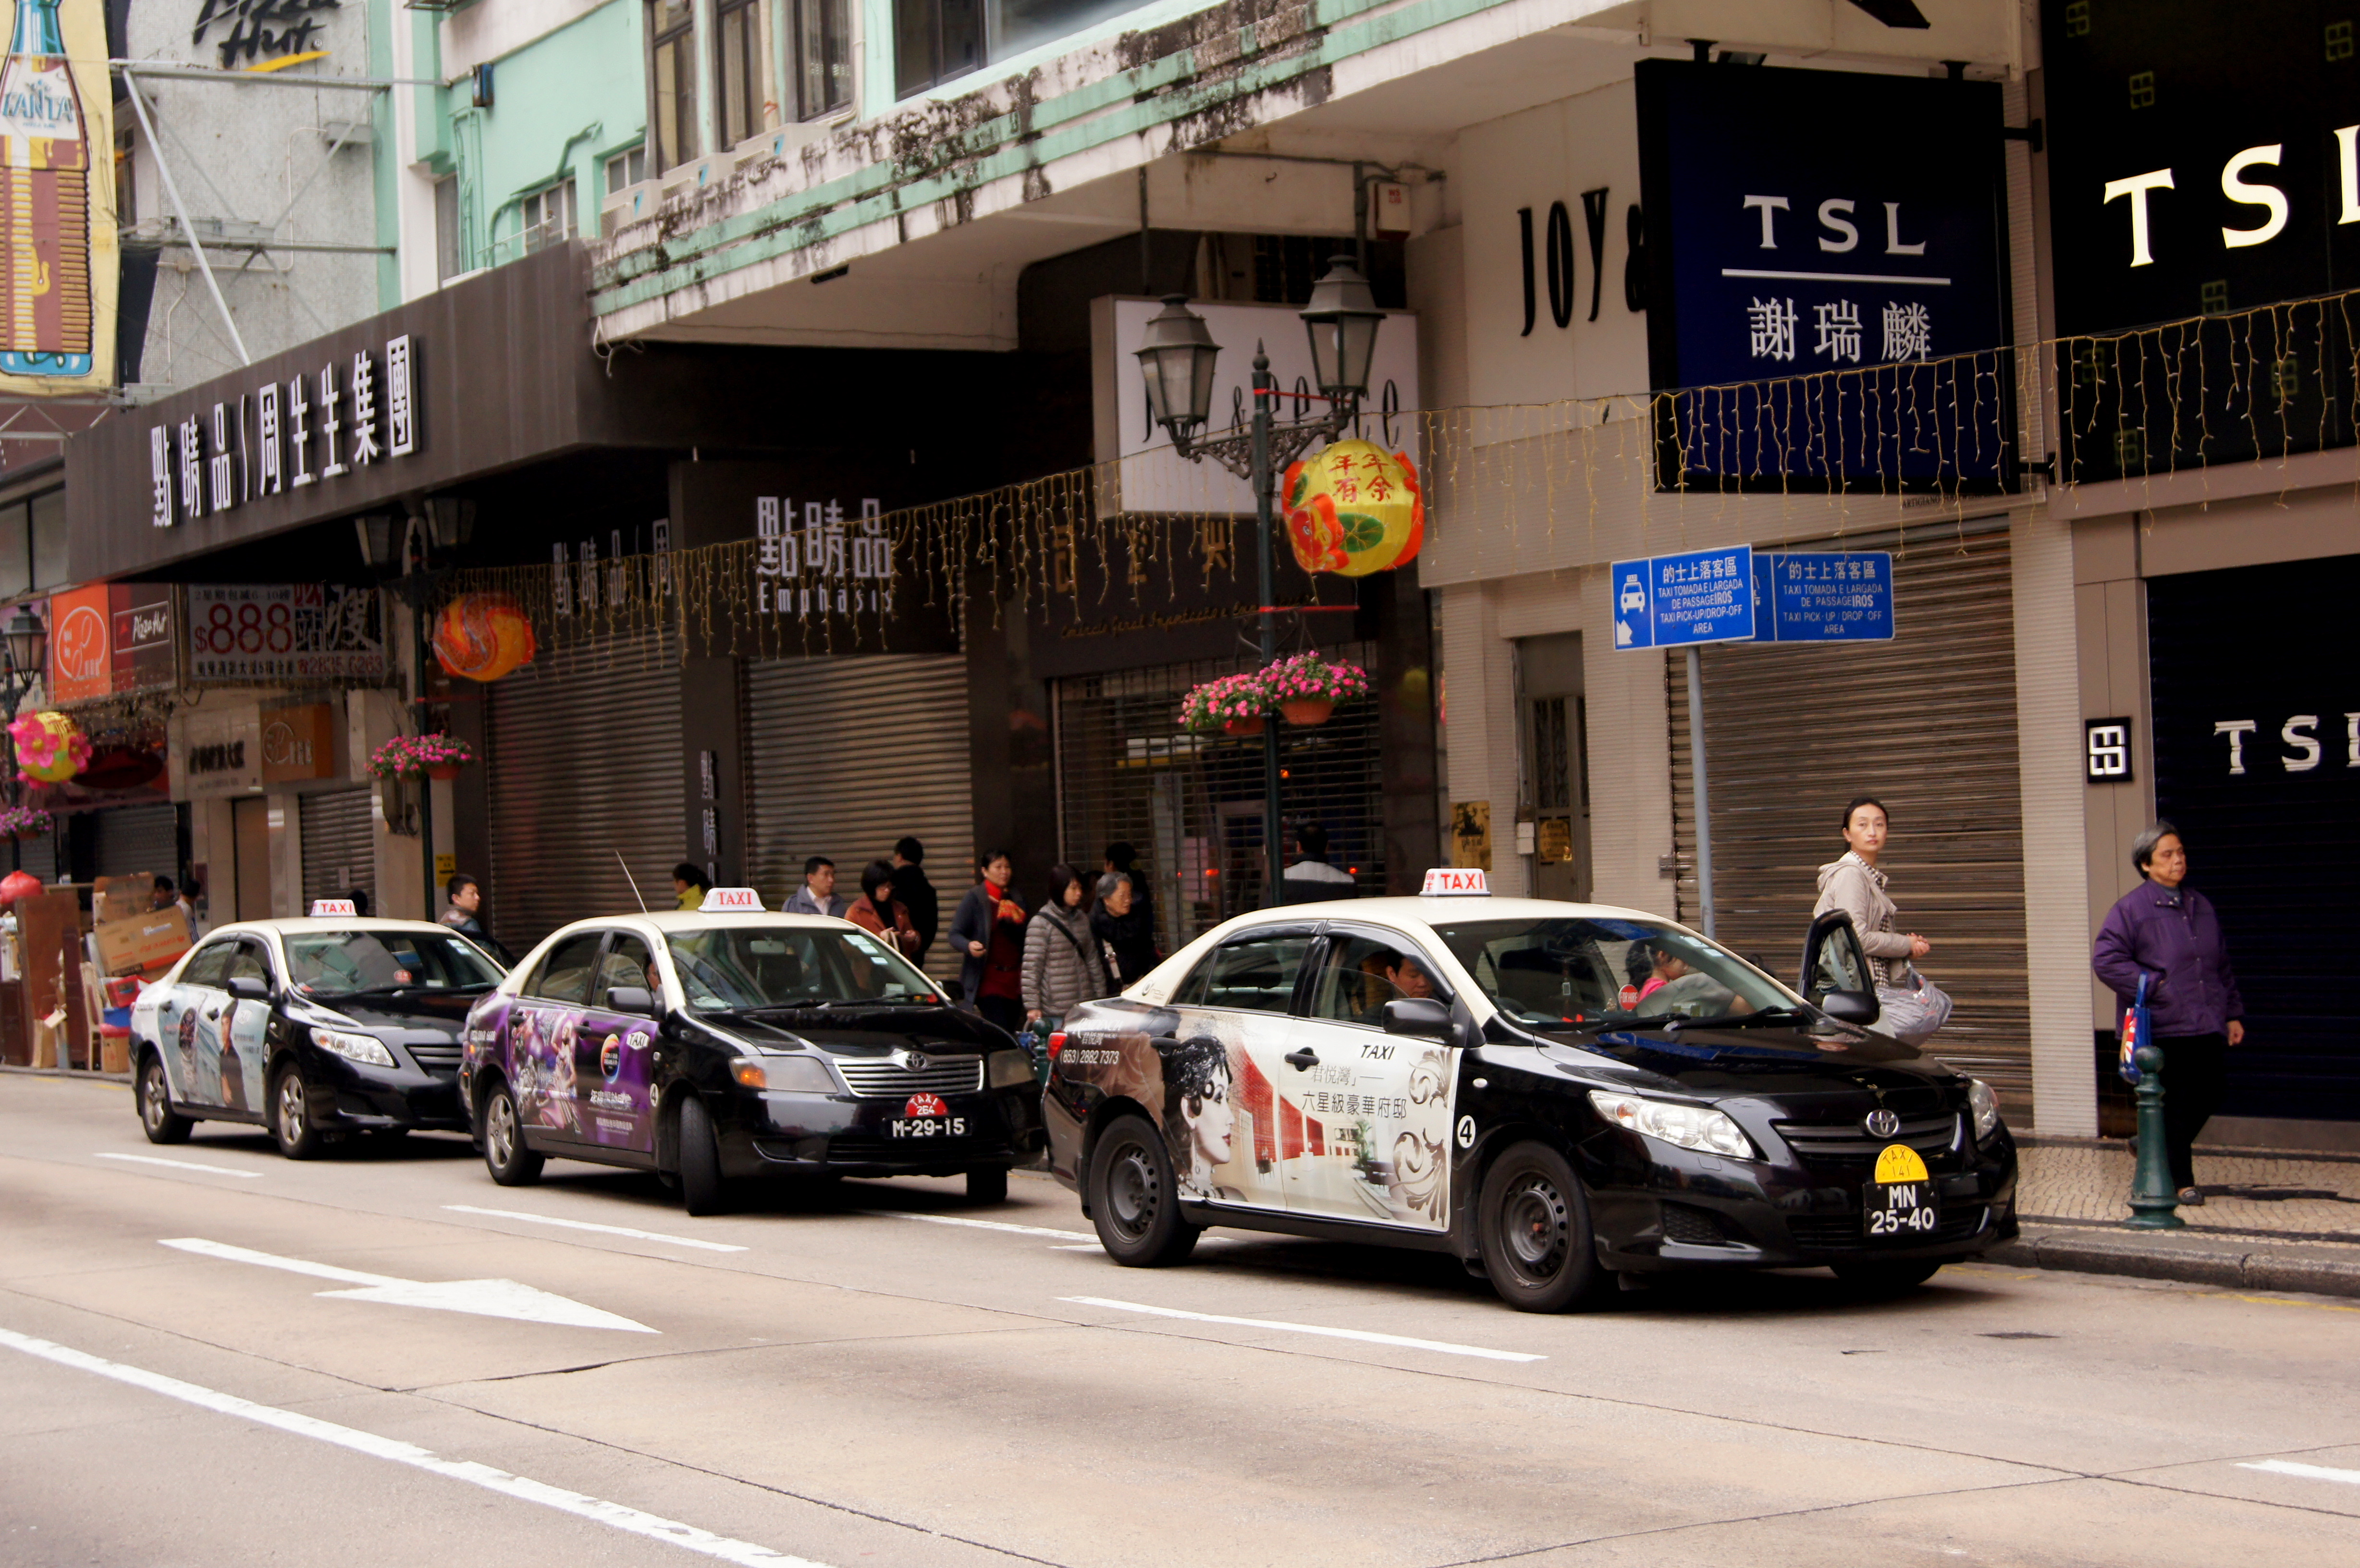 macau gov 39 t opens public tender for 100 taxi licences allows owners of taxis destroyed by. Black Bedroom Furniture Sets. Home Design Ideas